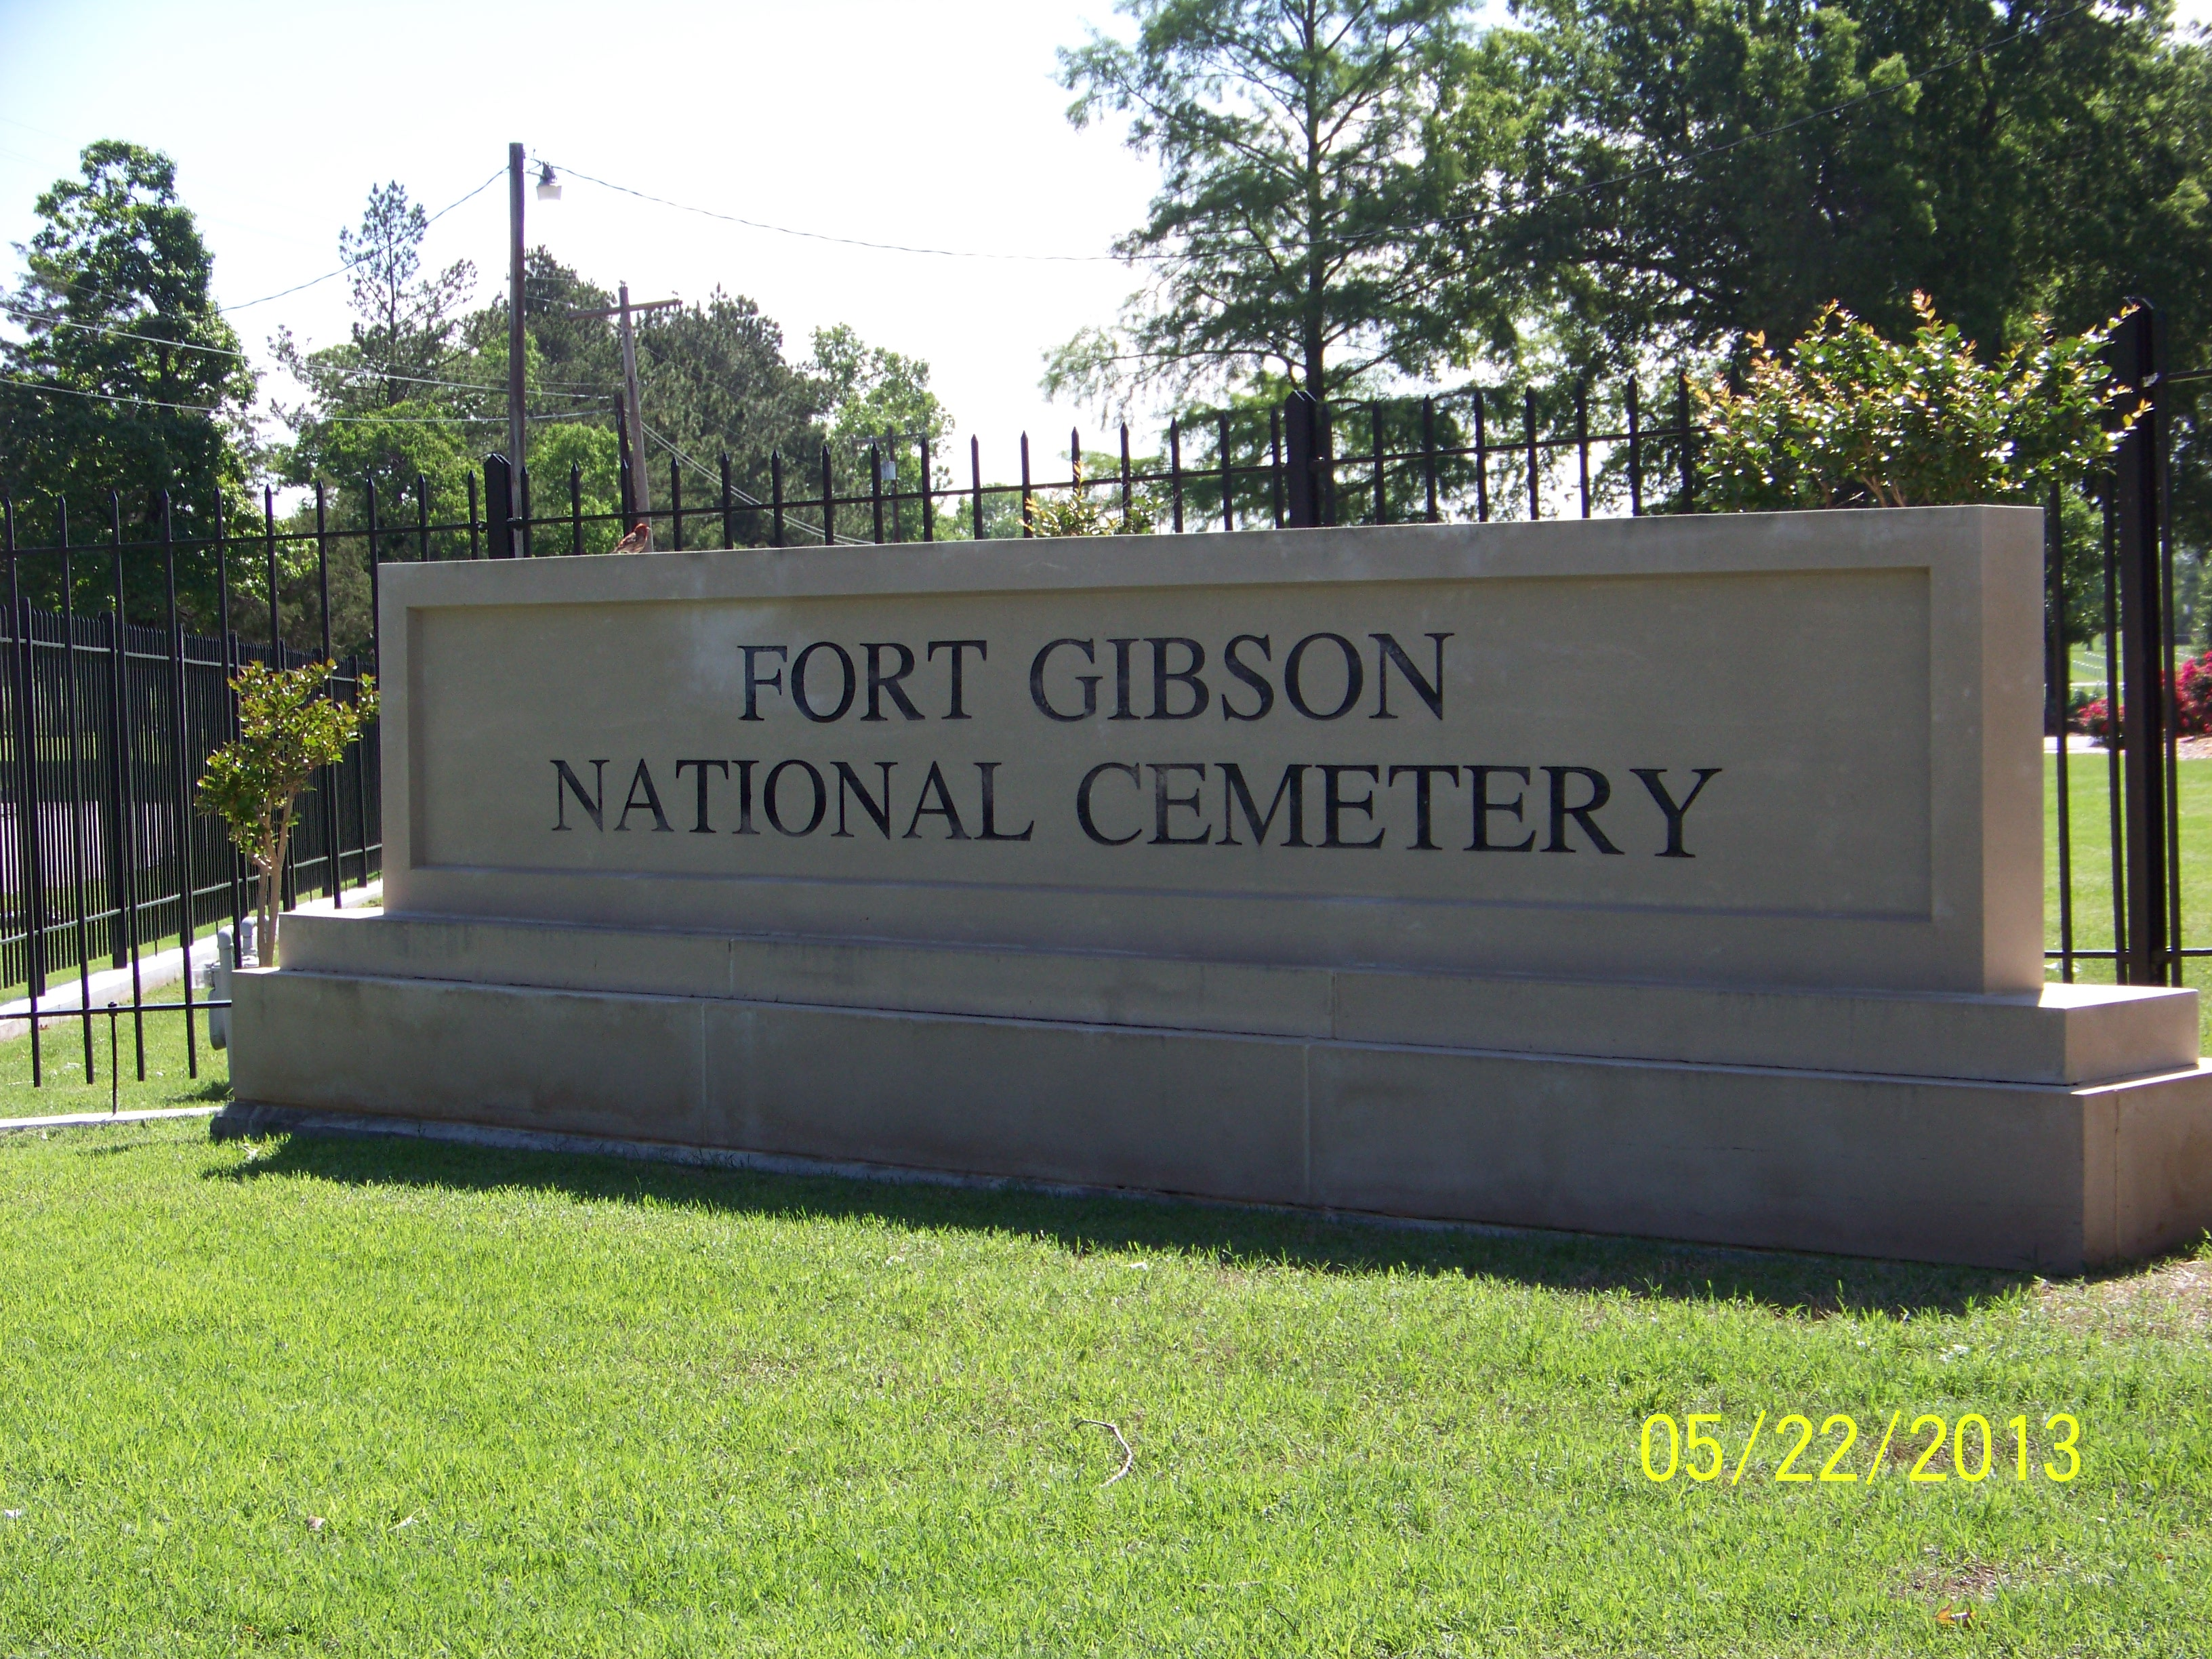 Fort Gibson National Cemetery